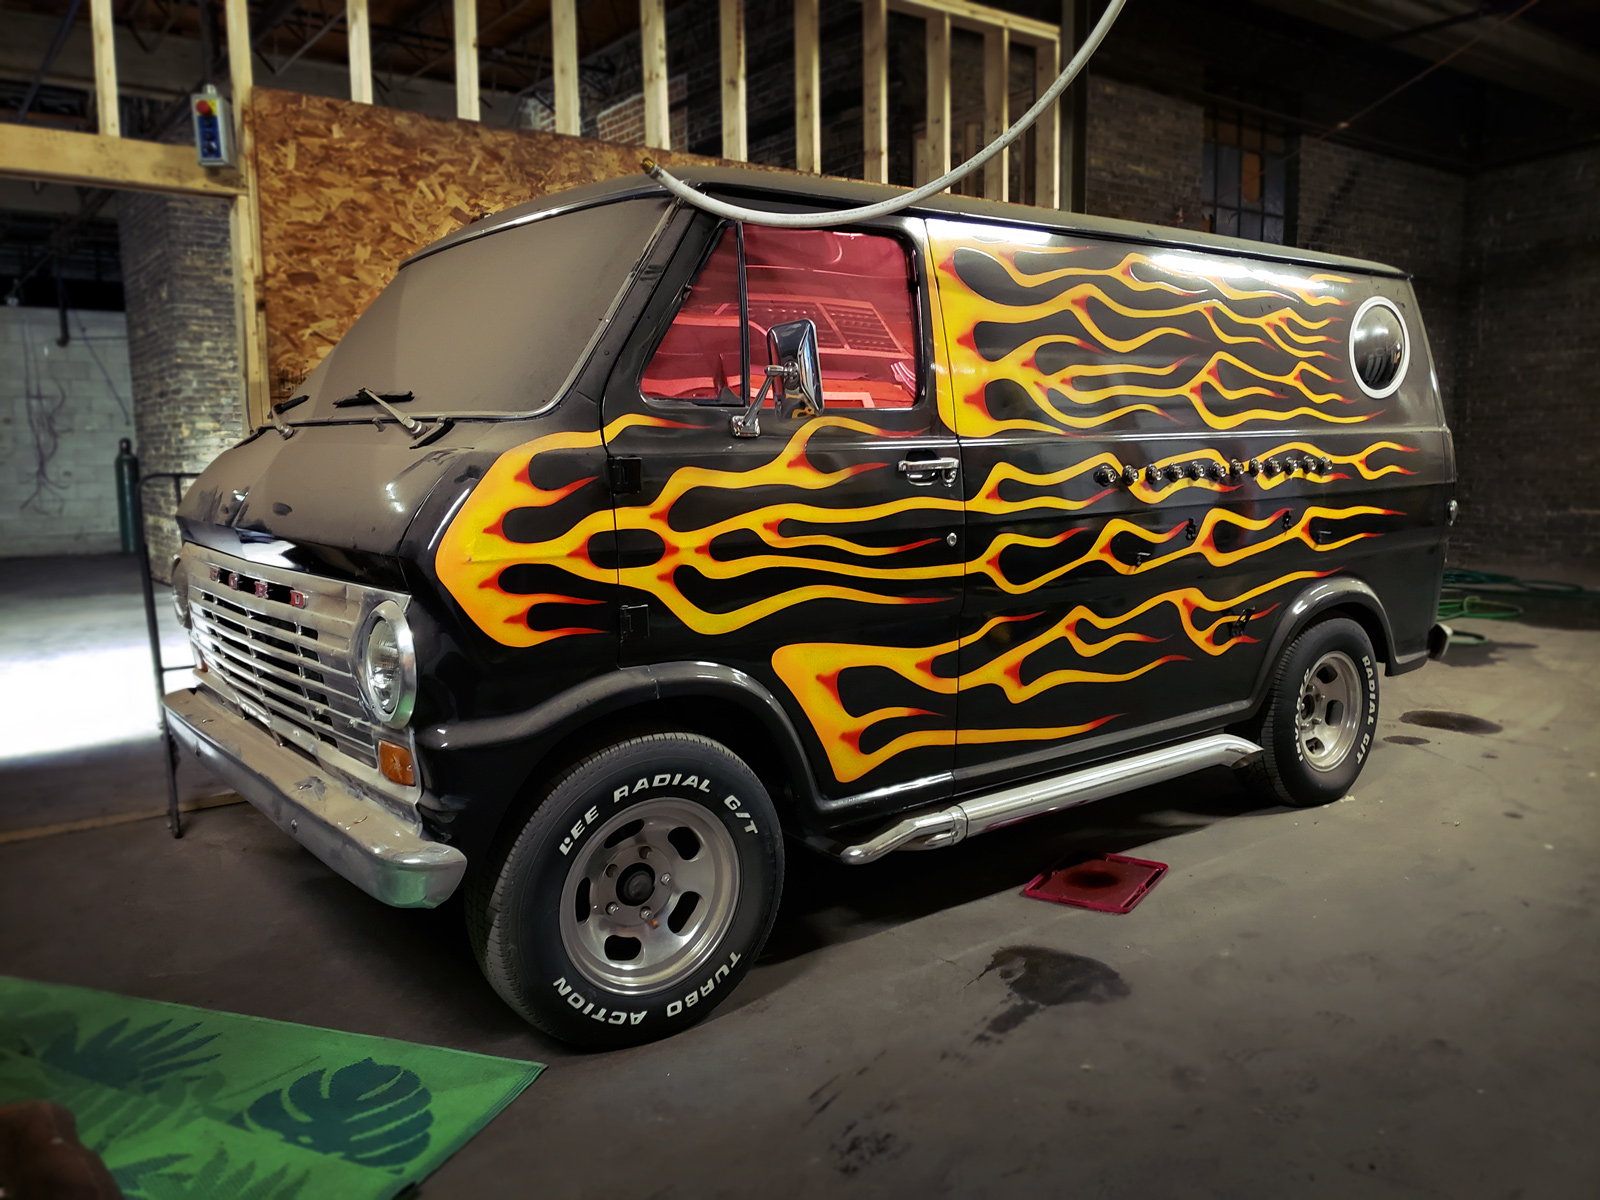 A black van with hot rod flames painted all across its exterior.